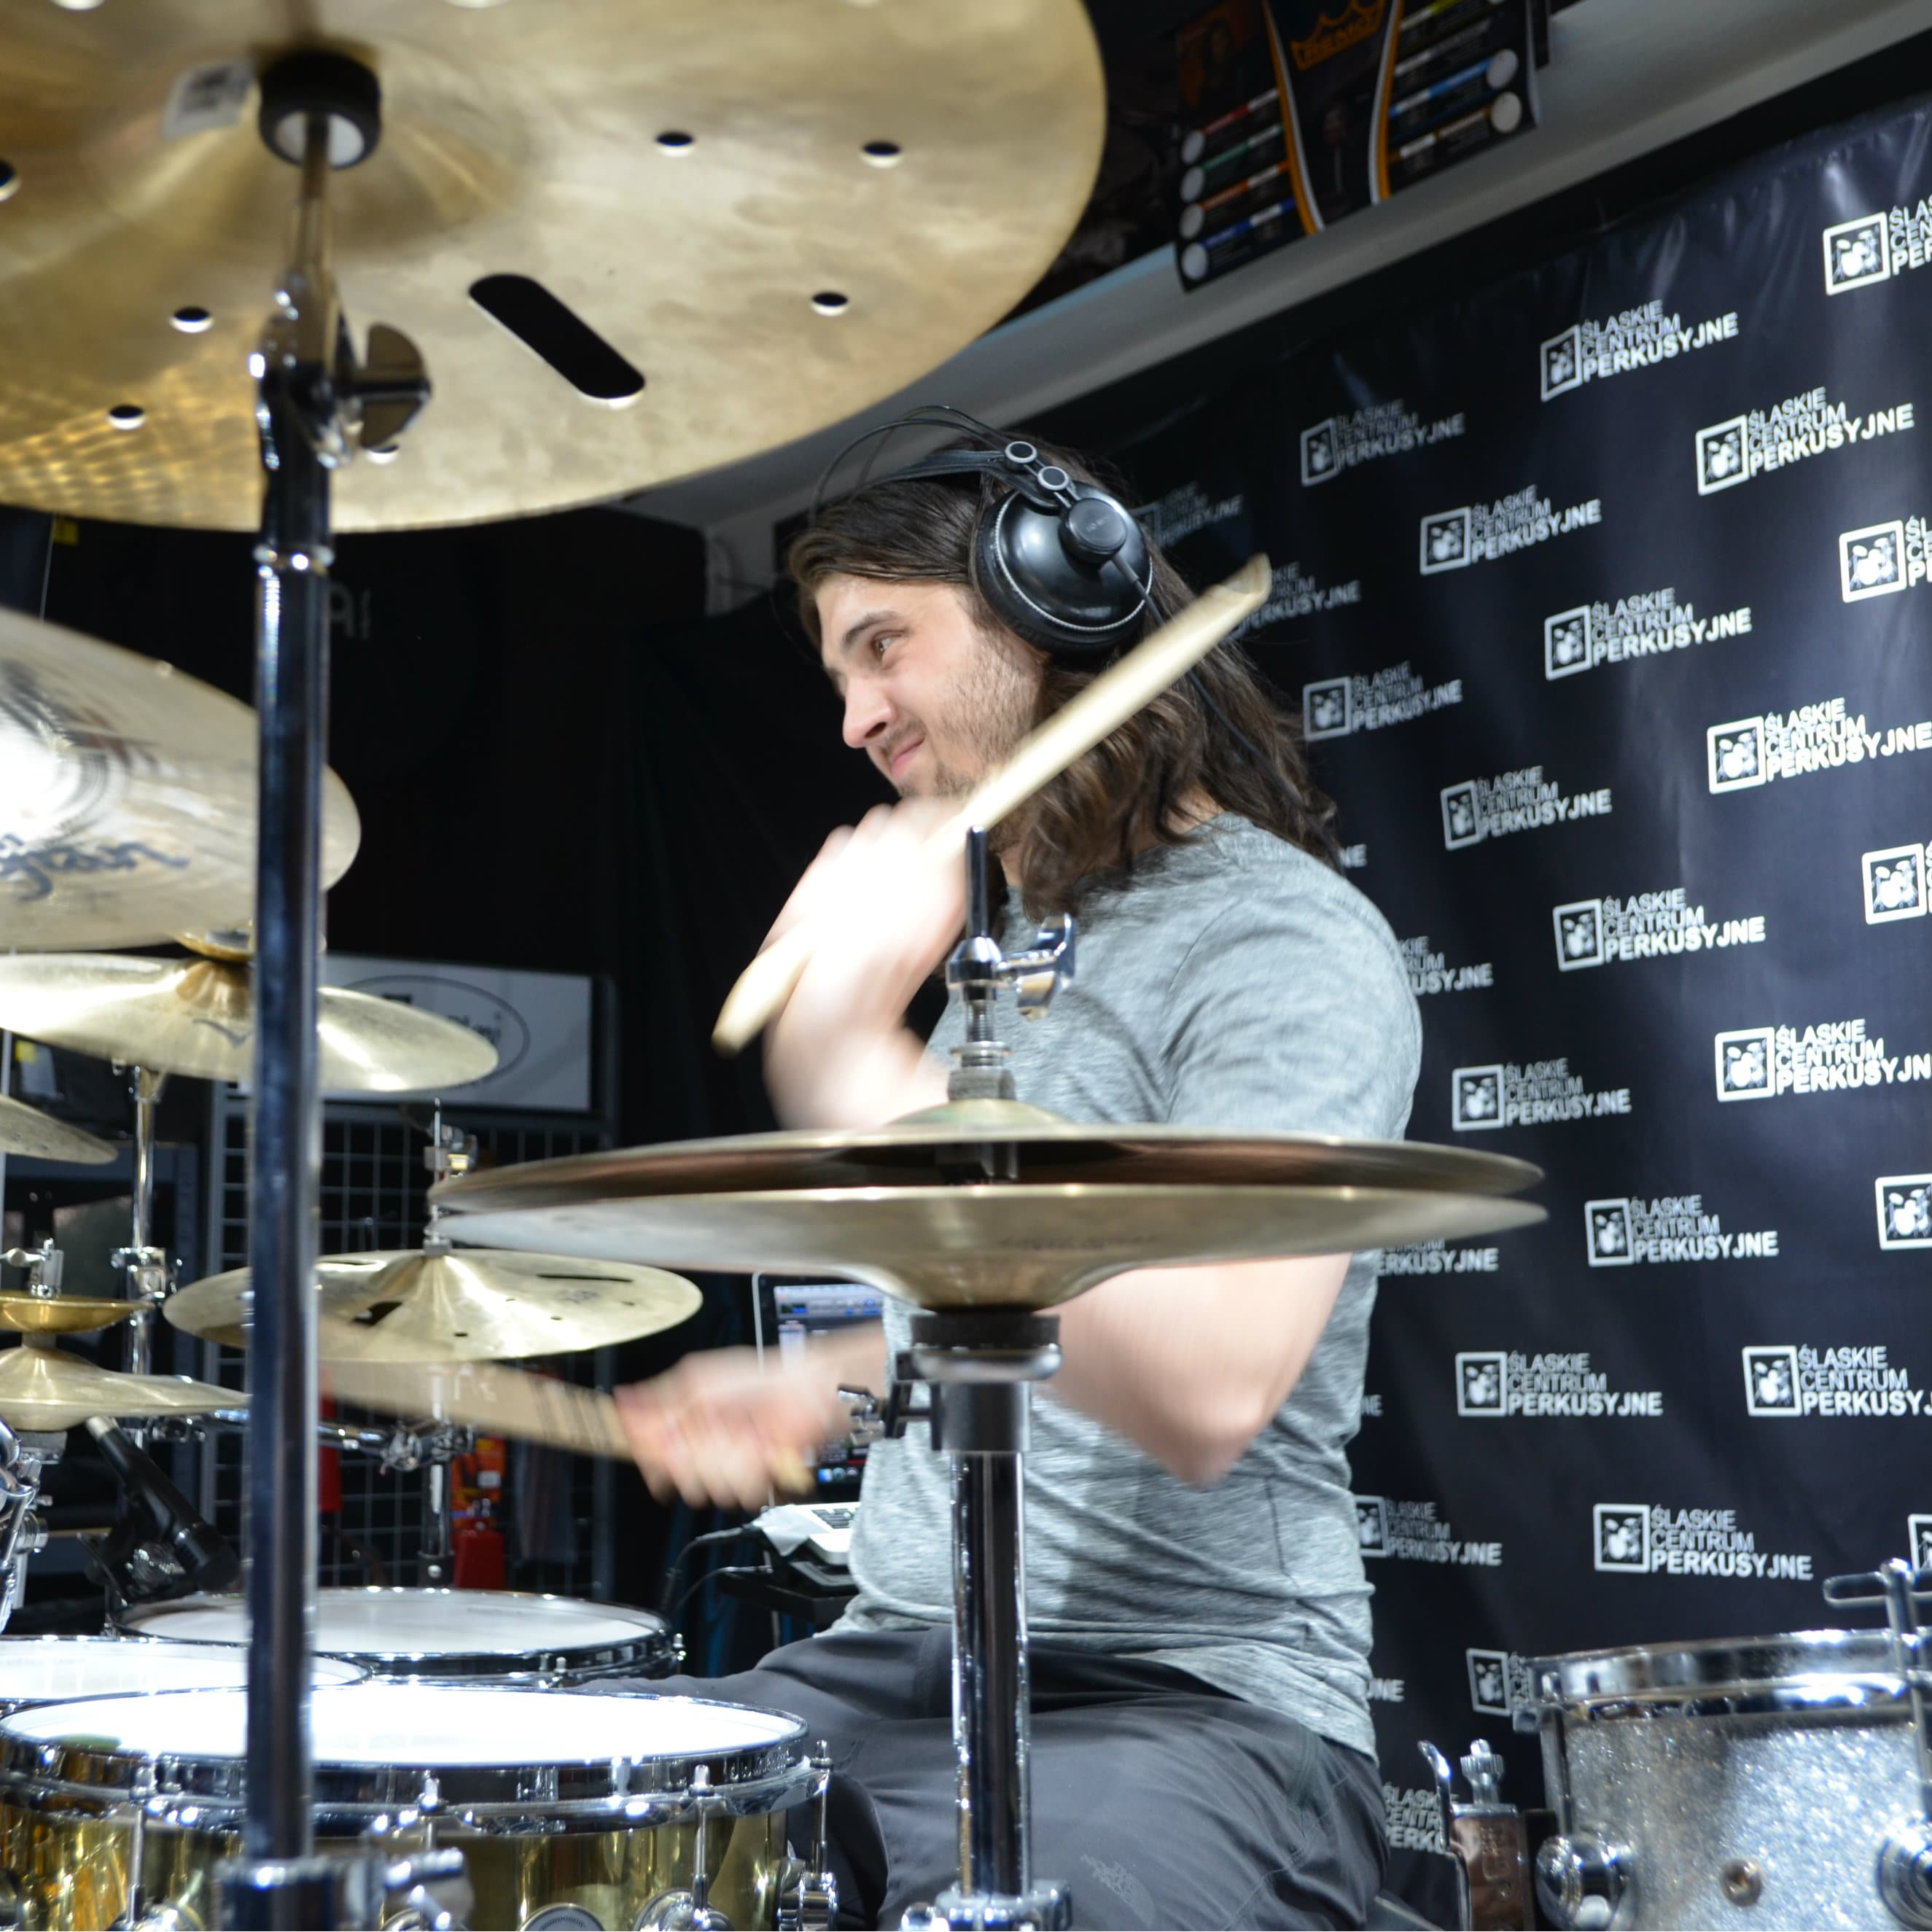 Dalibor Mraz vic firth